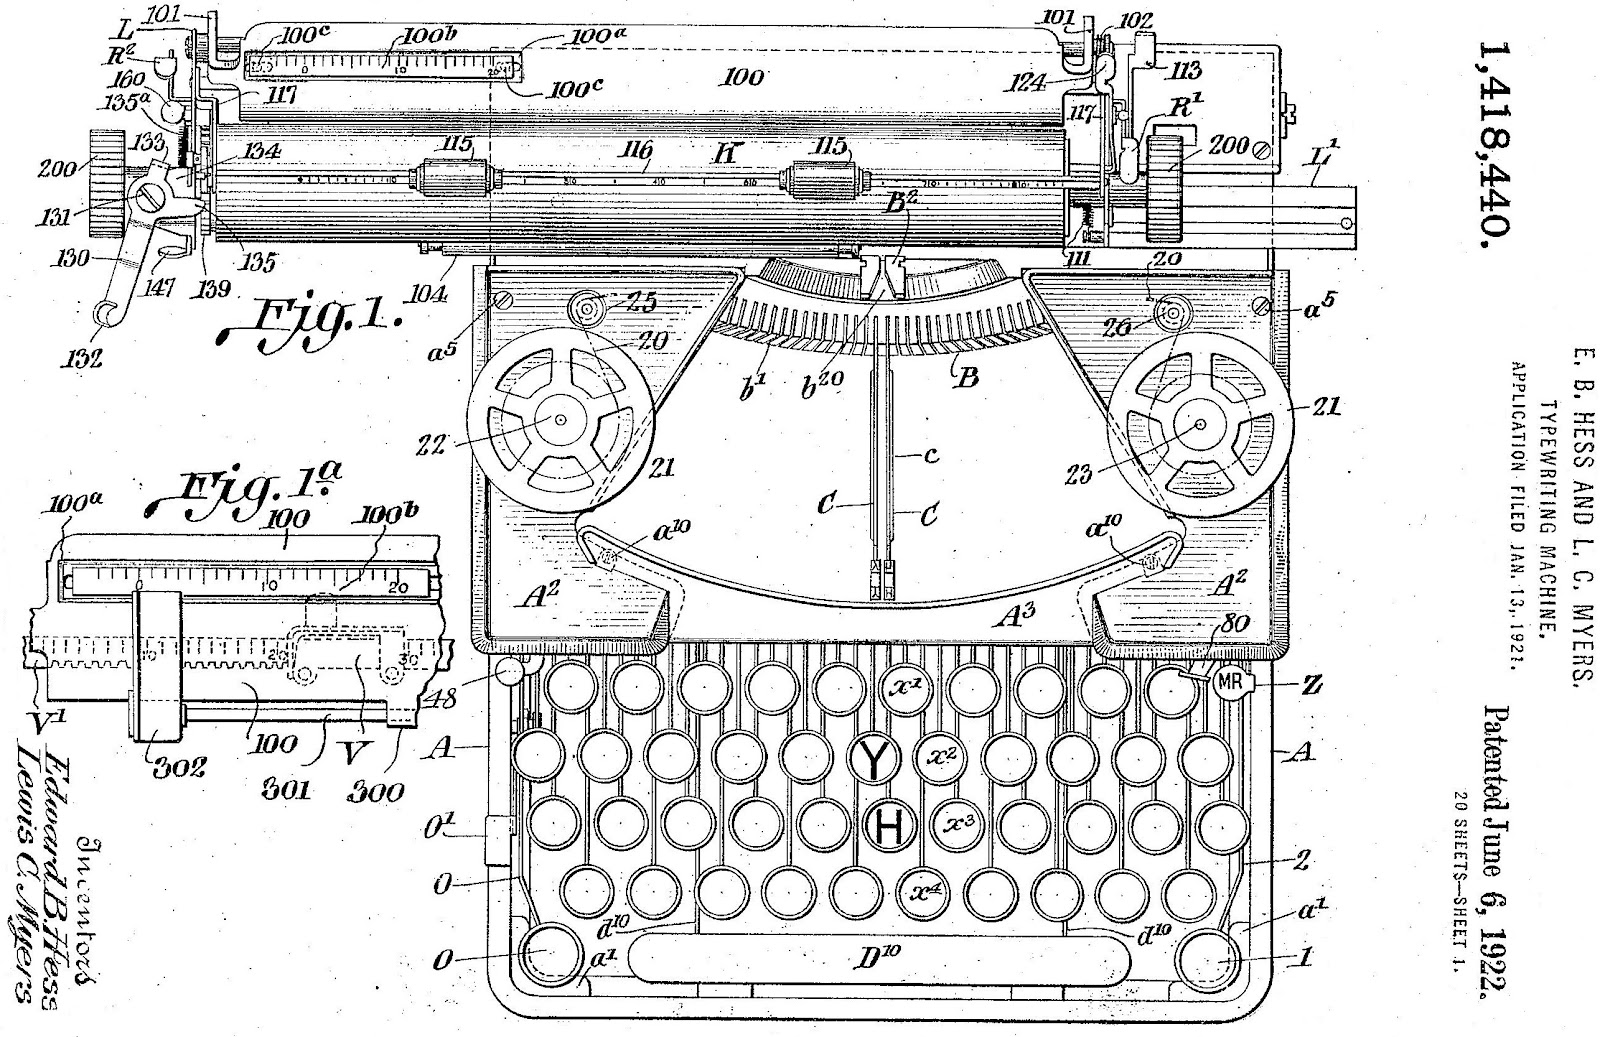 Oz Typewriter The First Royal Portable Typewriter 90